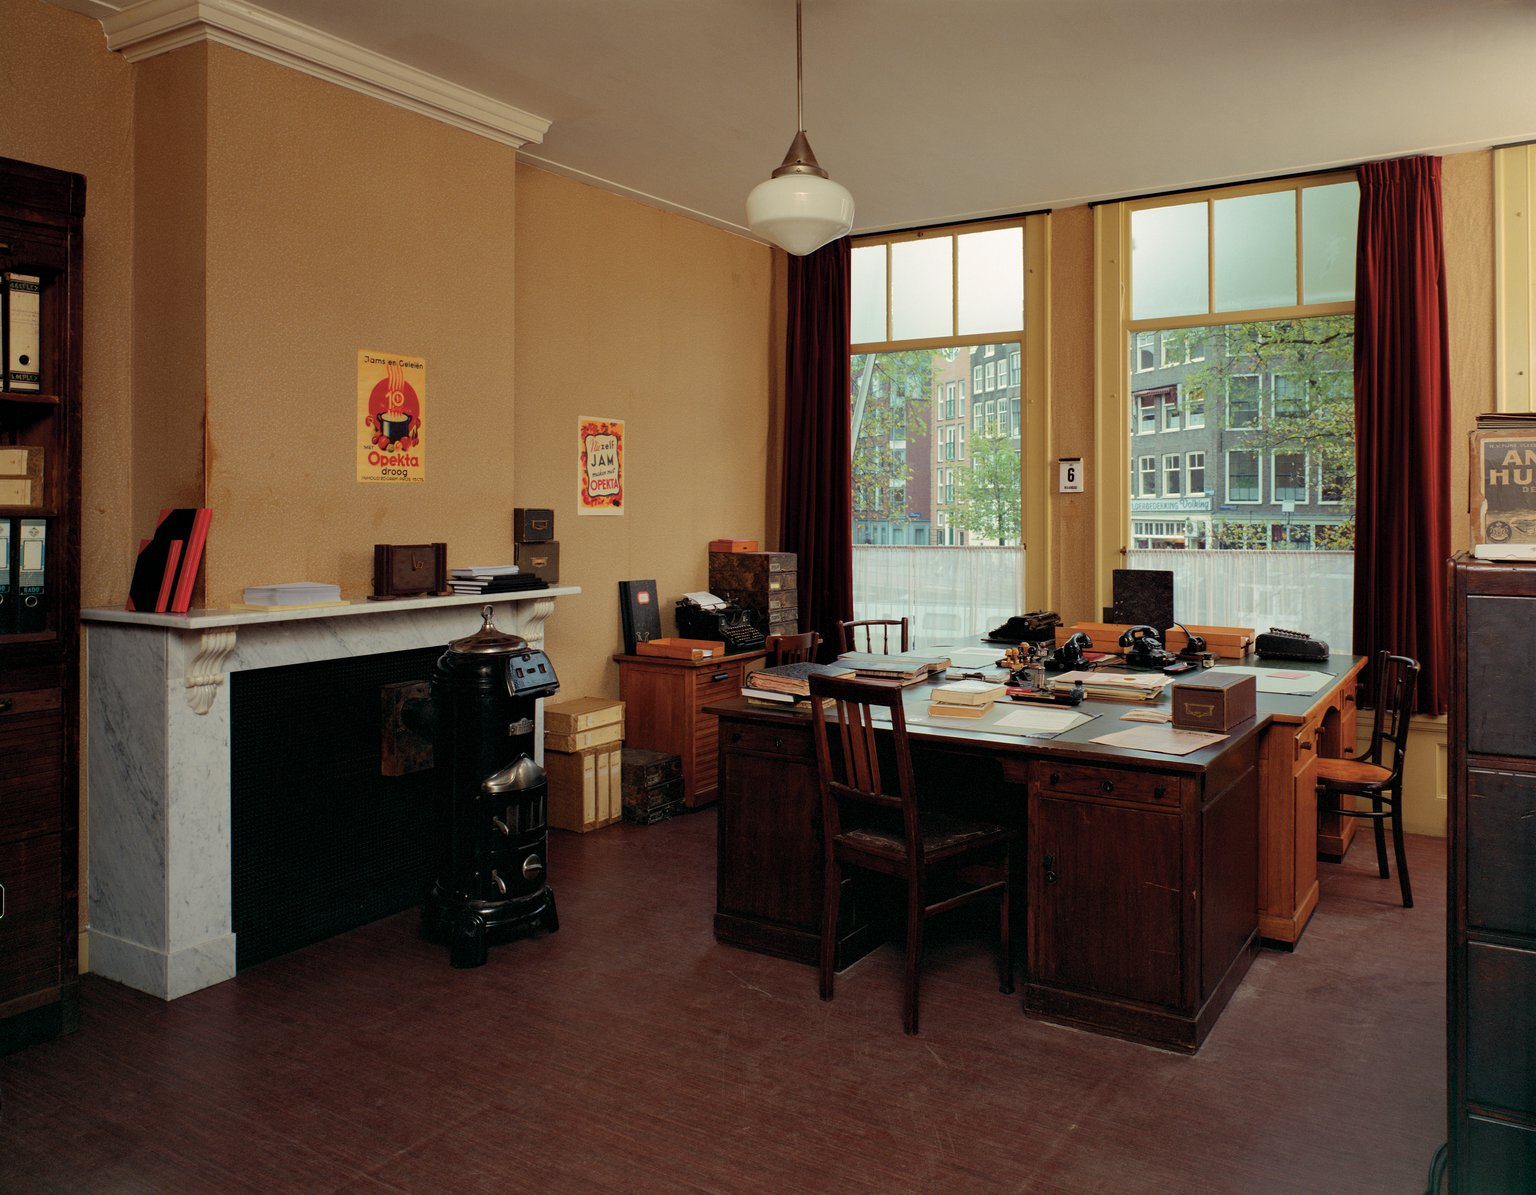 The office of Johannes Kleiman, Miep Gies and Bep Voskuijl, reconstruction (1999).